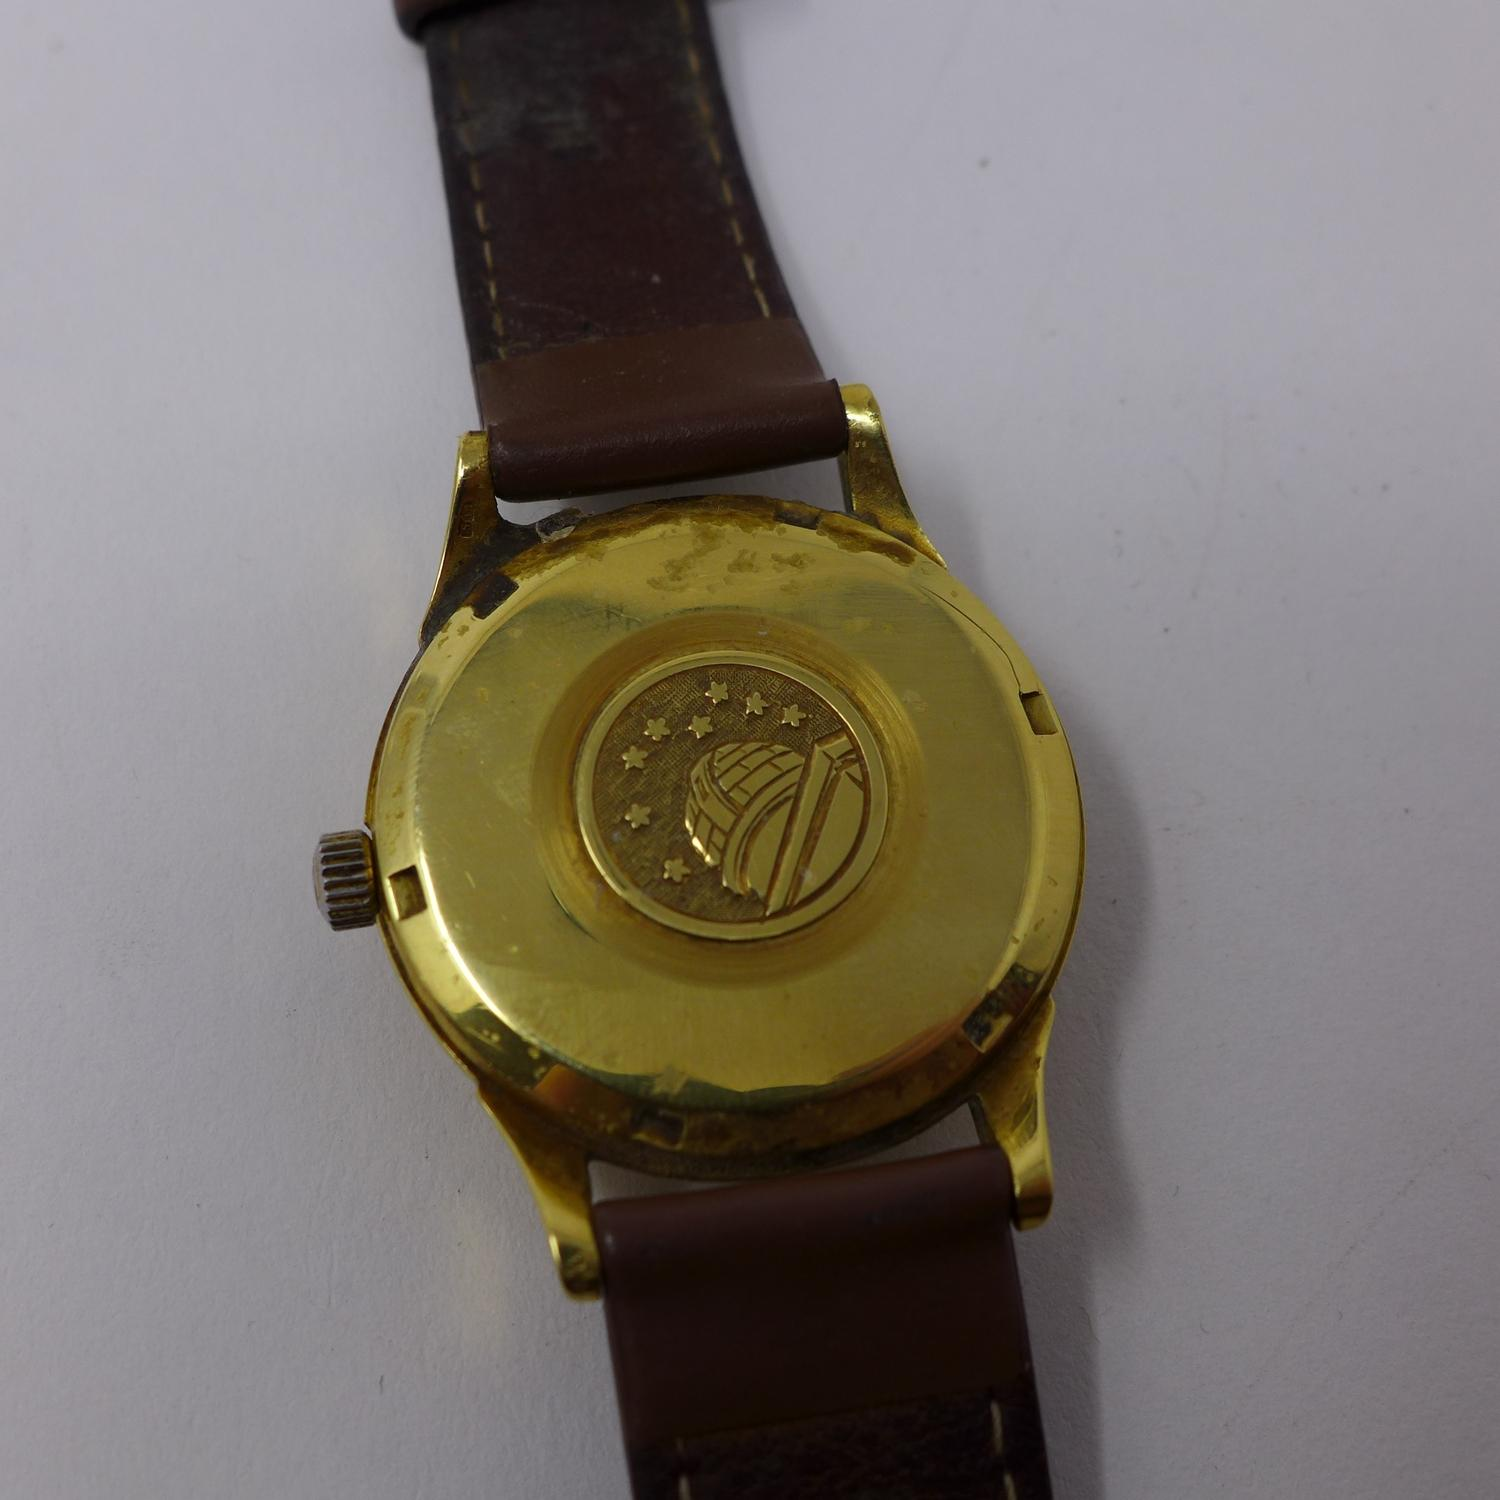 Lot 26 - An Omega Constellation gold plated gentleman's automatic chronometer, silvered dial with baton